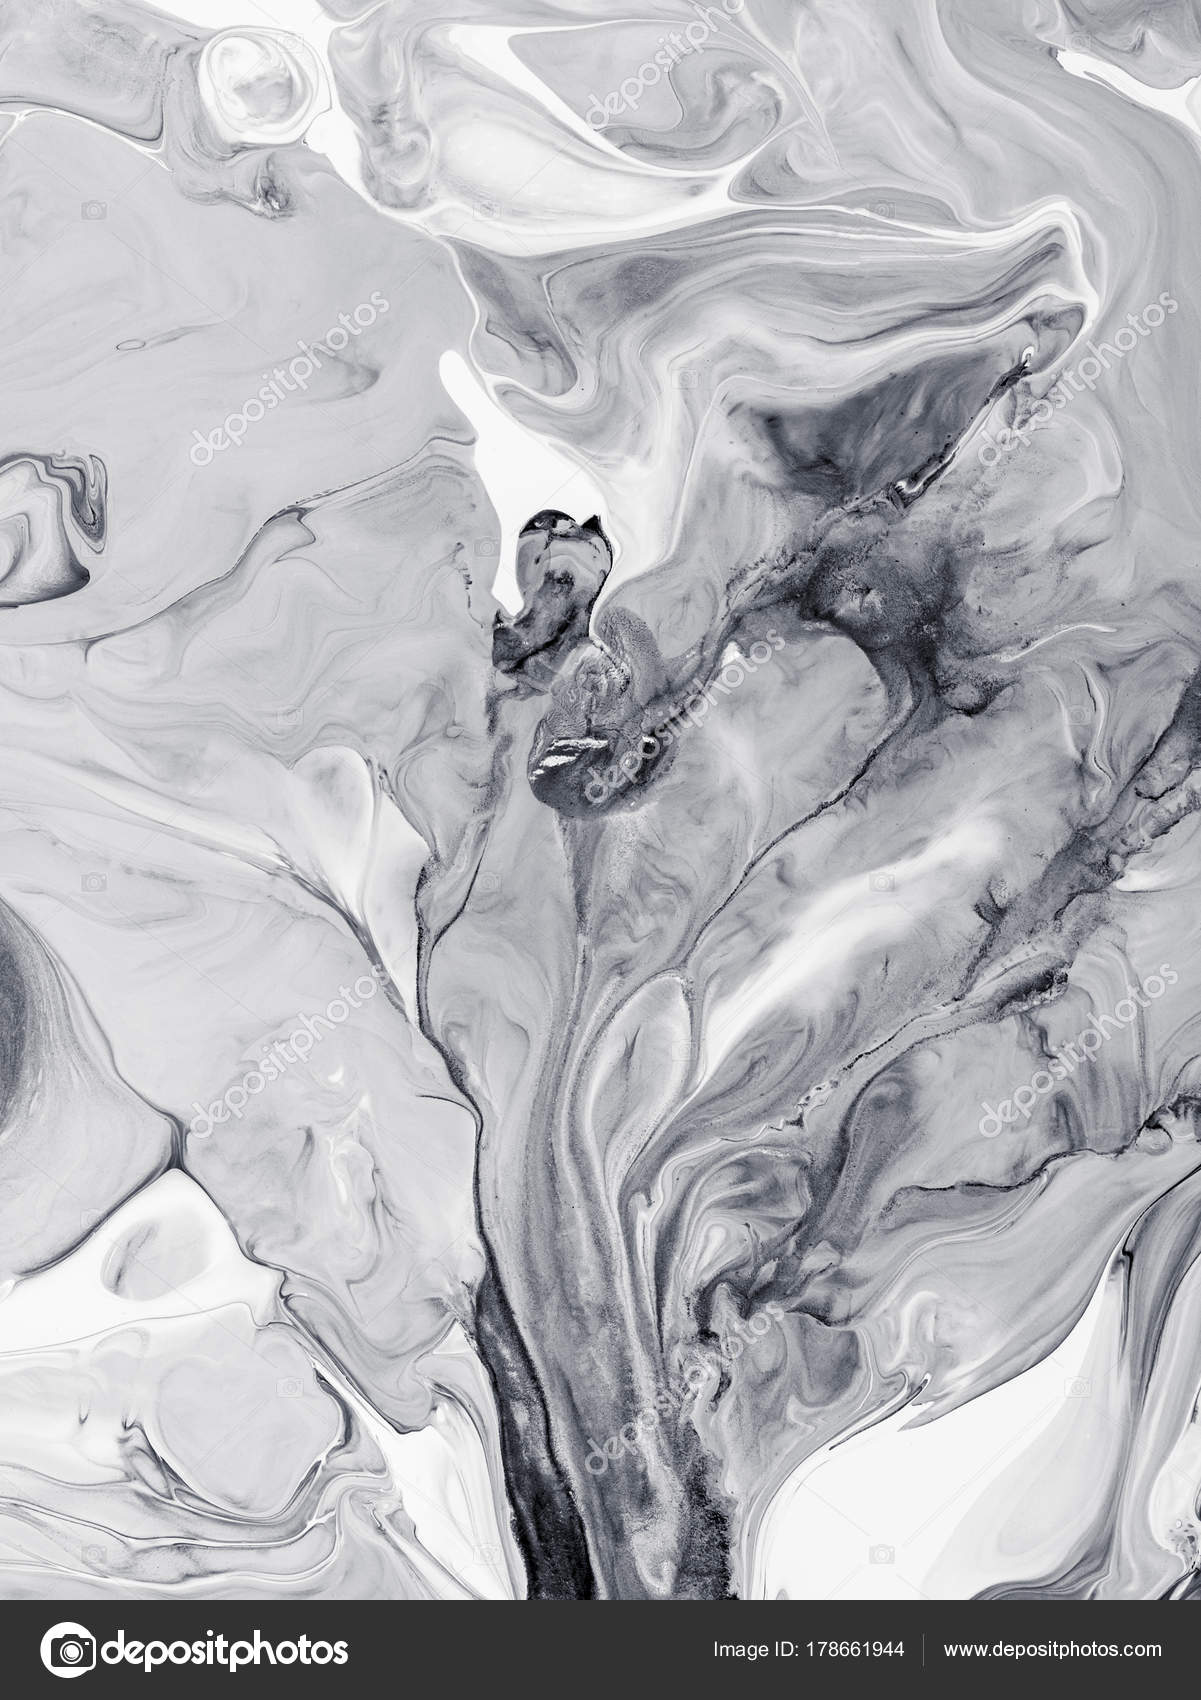 Beautiful Wallpaper Marble Painting - depositphotos_178661944-stock-photo-black-and-white-marble-abstract  Gallery_568962.jpg